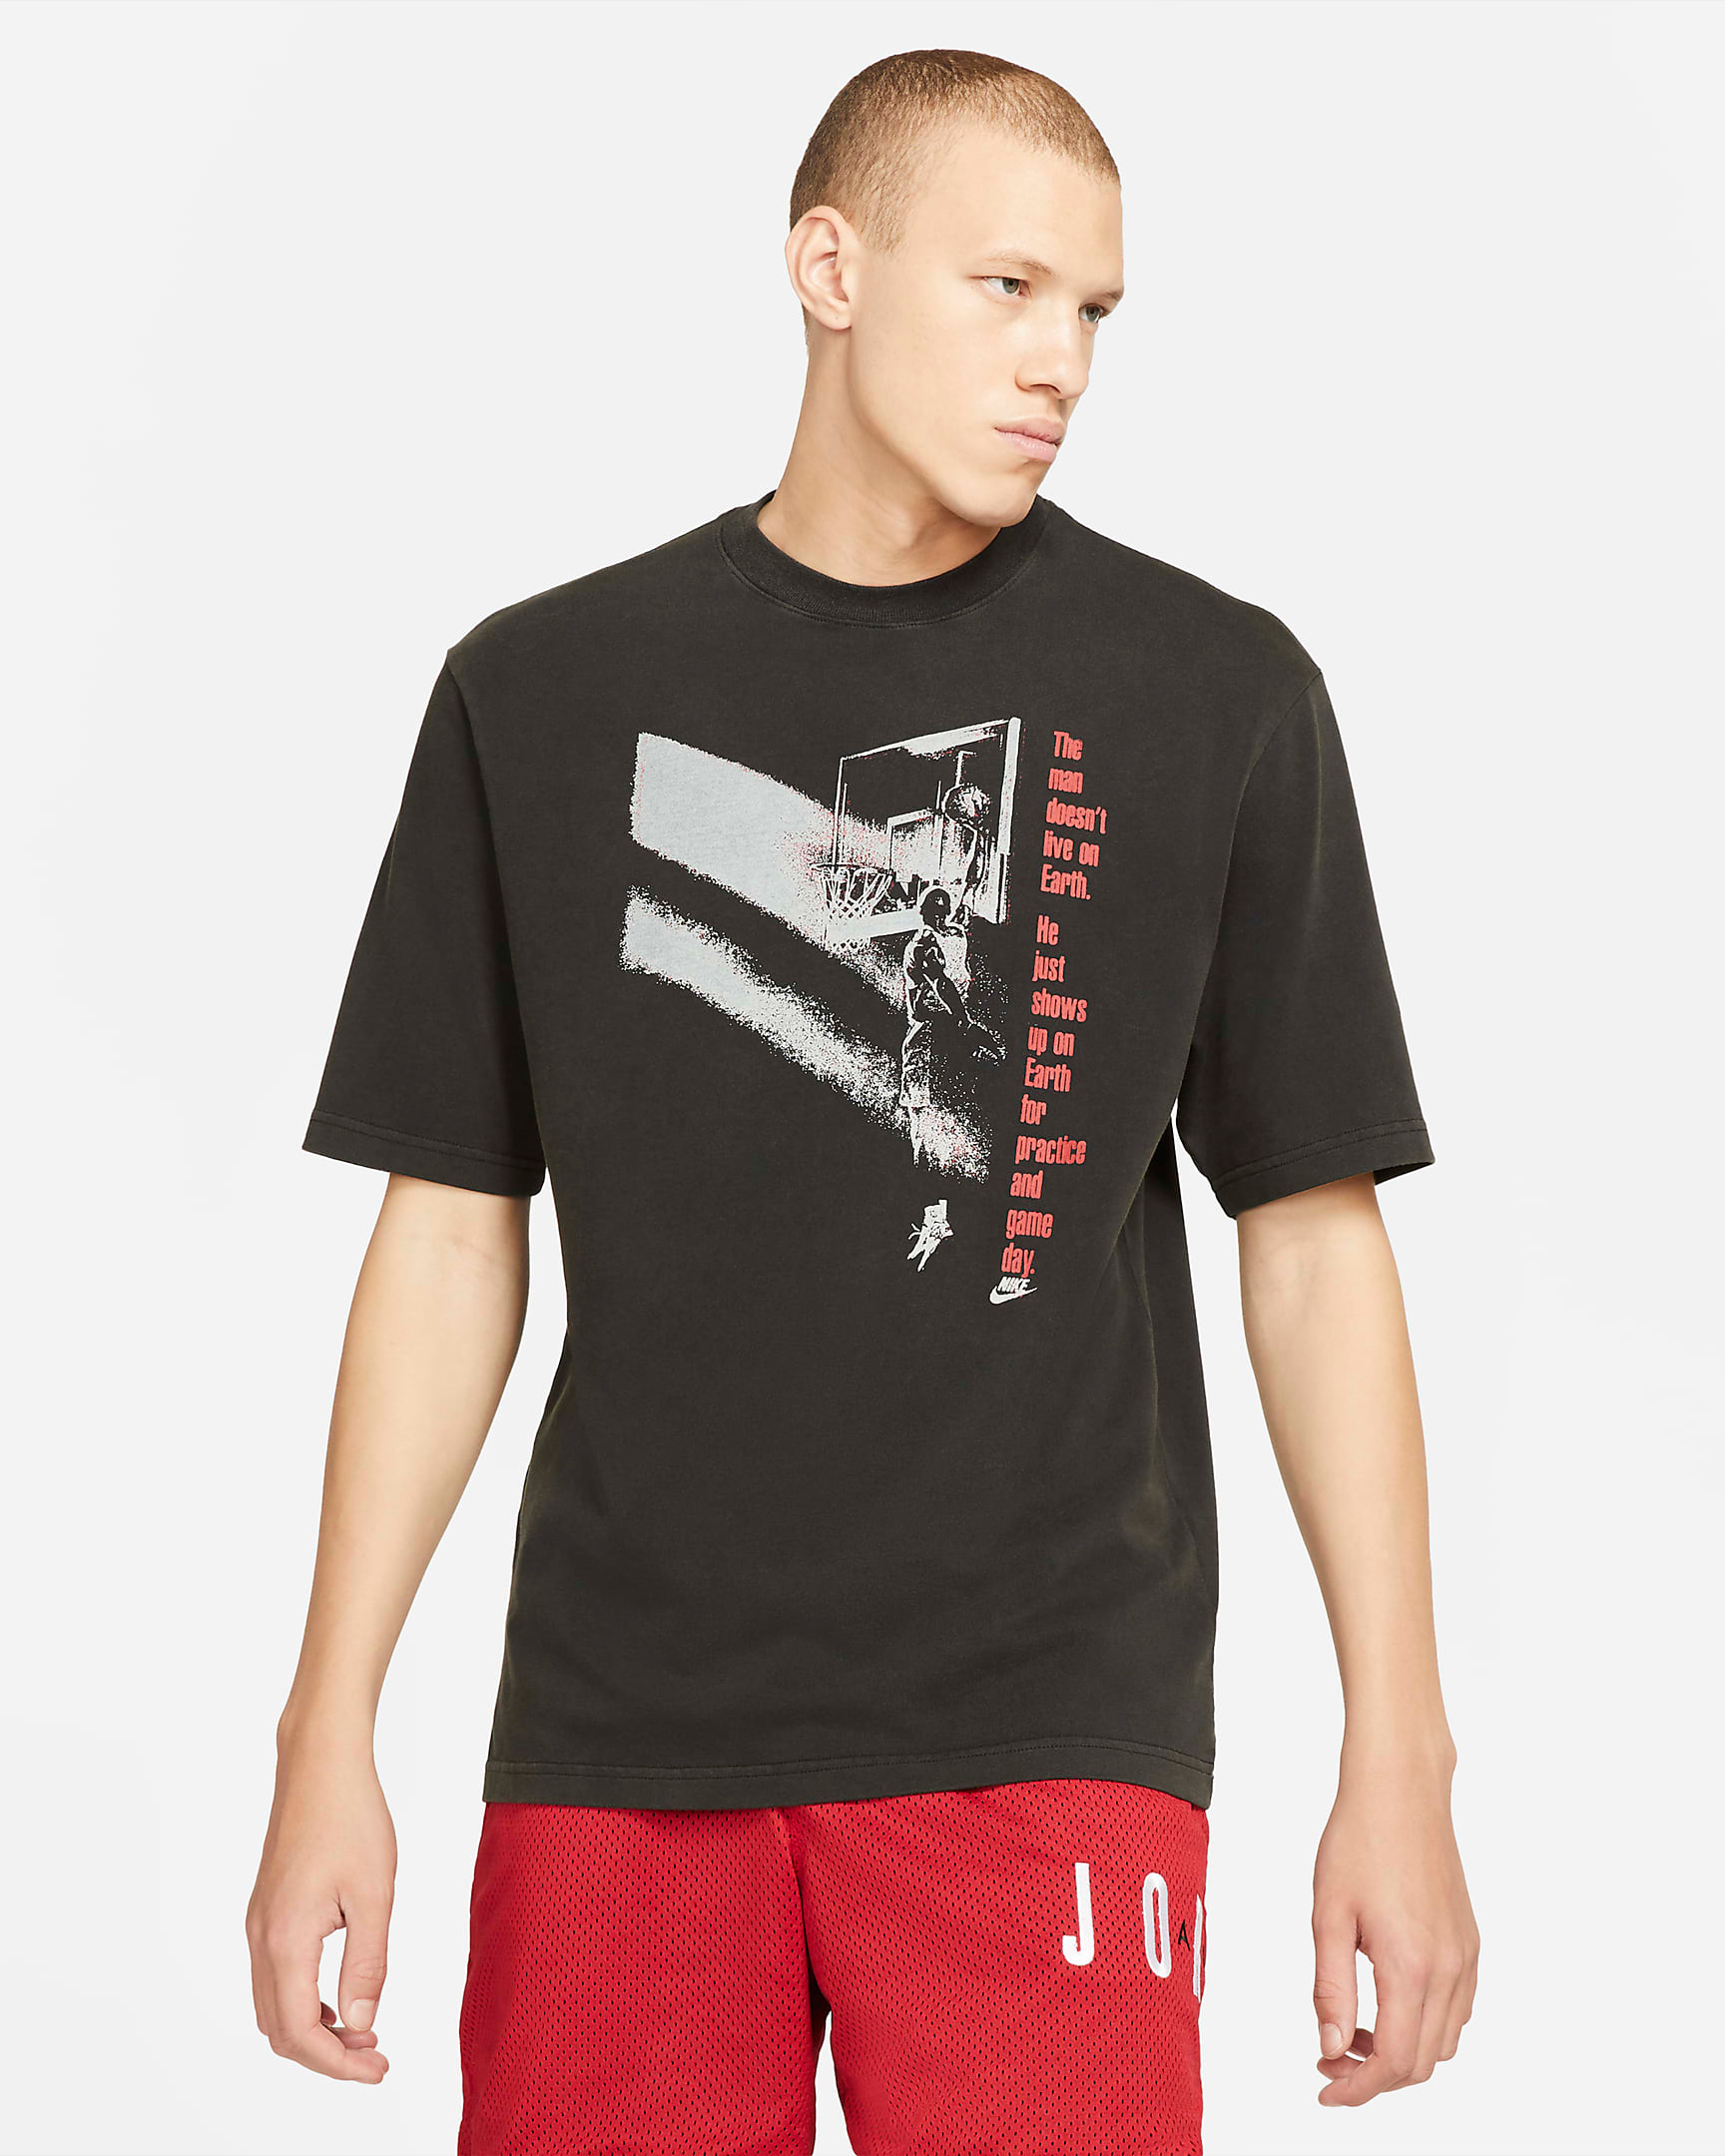 jordan-flight-graphic-shirt-black-red-grey-summer-2021-1